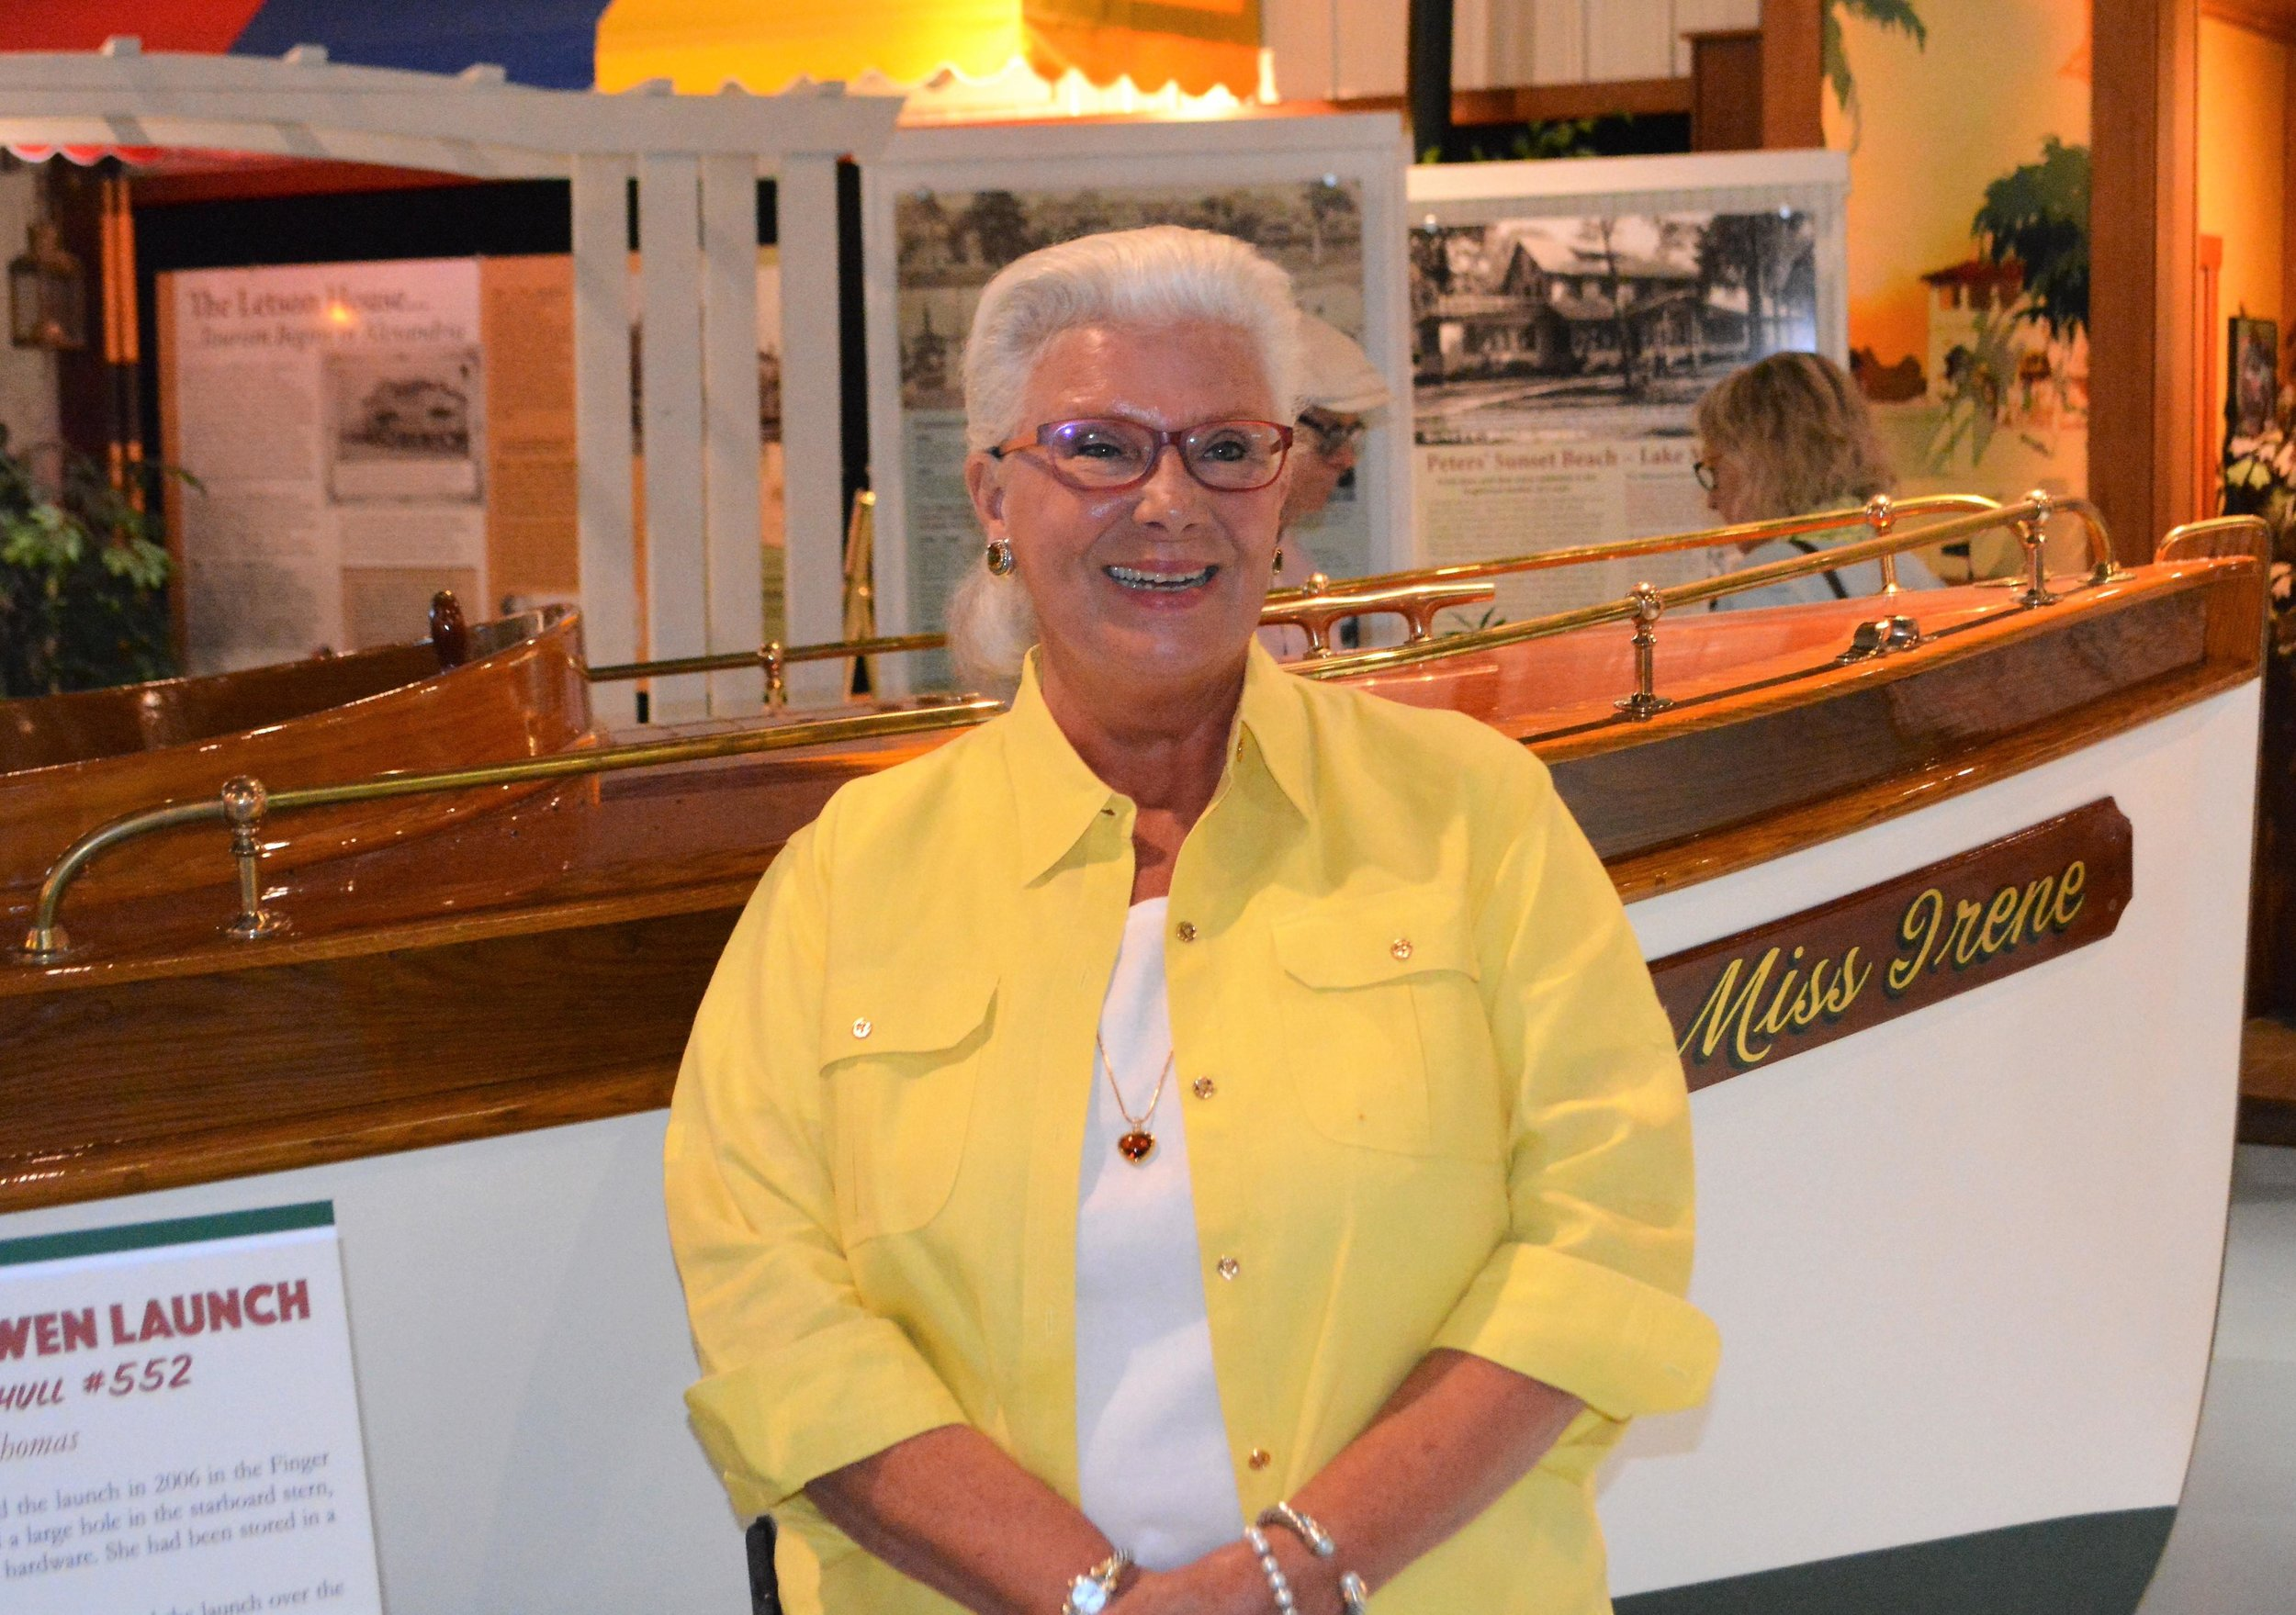 Betty Thomas poses next to one of two boats she donated to the museum with her husband, Jack, who died last year. Thomas was honored at a reception last week. (Ross Evavold / Echo Press)